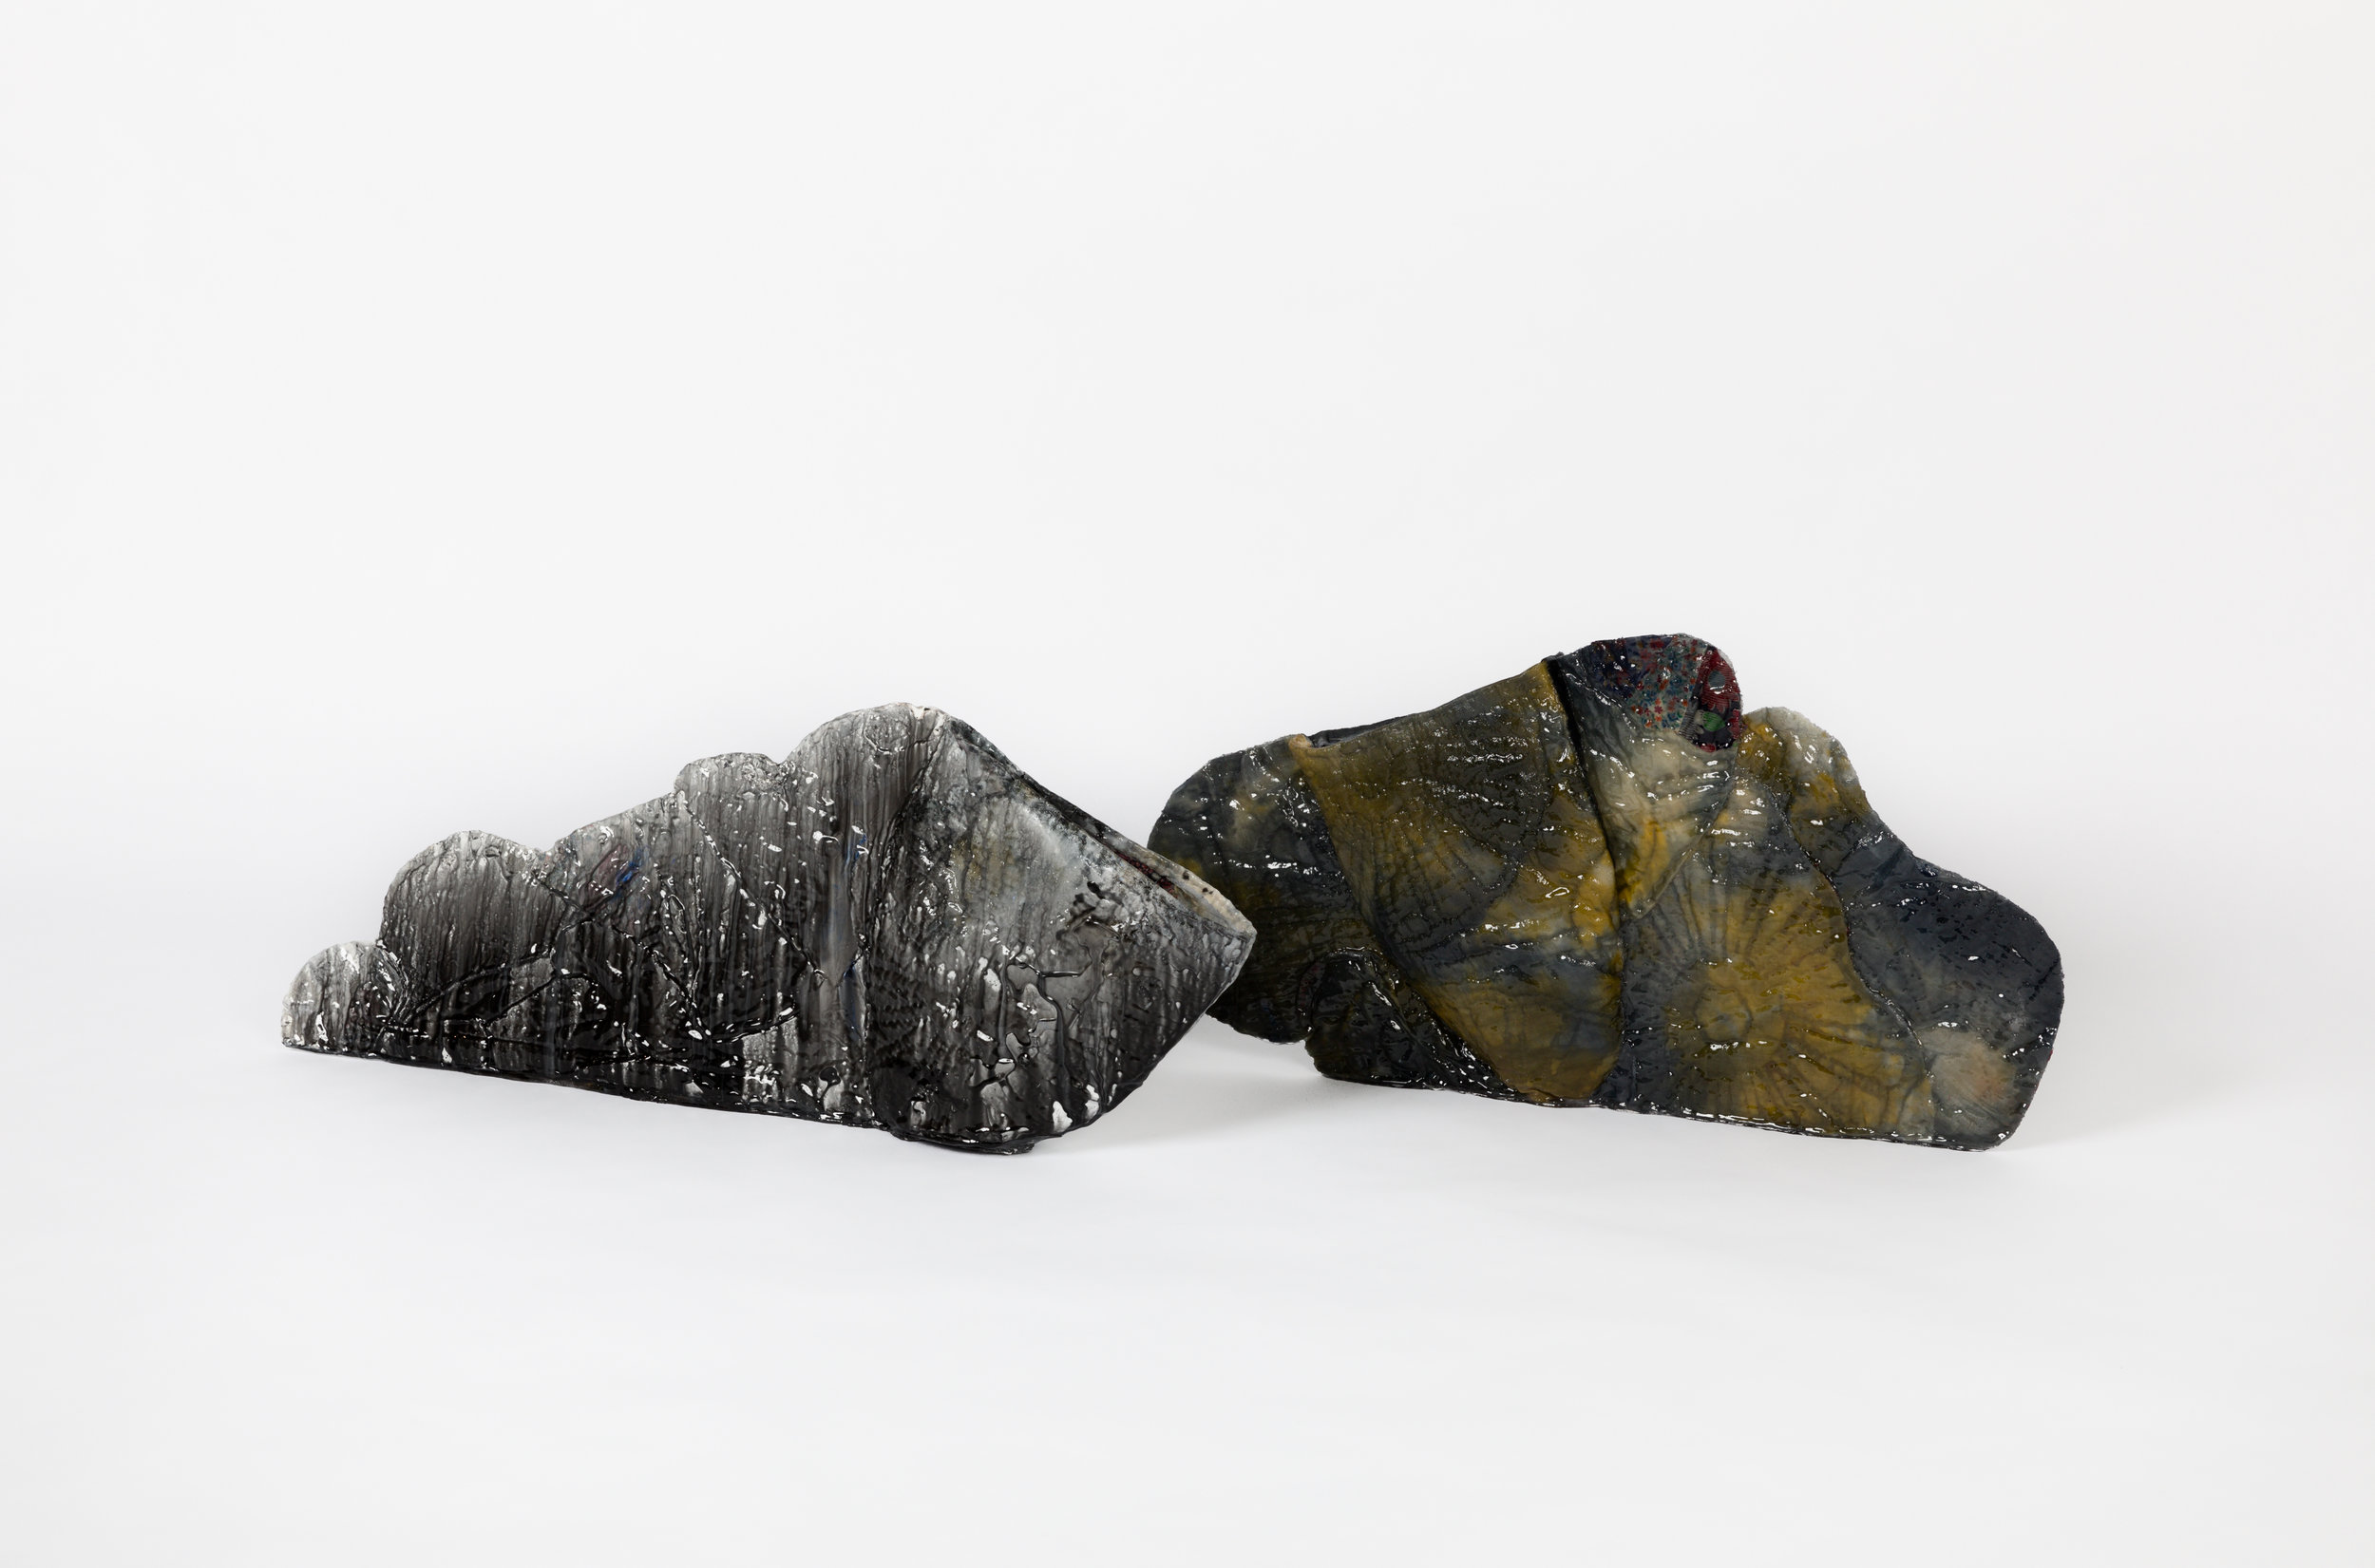 Vadis Turner: Bedfellows at Zeitgeist Gallery - REVIEW | 12.22.2018 @ Zeitgeist GalleryVadis Turner opens at Zeitgeist Gallery in Nashville, TN with Bedfellows (through December 22, 2018), an exhibition of highly-formal sculptural works and wall reliefs that reframe materials and processes of labor often associated with domesticity. The Nashville-based artist is best known for her transformative use of gendered materials in abstract reliefs and sculptures about female experience(s). The latest body of work from Turner since the debut of her first solo exhibition, Tempest, at the Frist Art Museum in 2017—which highlighted the artists expressive ribbon-drip reliefs and breast milk encaustics—Bedfellows is a continuation of Turner's formal revision of archetypal domestic textiles. Yet, Bedfellows also denotes a new consideration by the artist for subtle experiences of object-duality; interior and exterior; intimate and enterable; hard and soft.Read More +[Image: Vadis Turner, Black and White Quilt Vessel and Leaning Cloud Quilt Vessel (2018). Image by John Schweikert. Courtesy of Zeitgeist Gallery.]